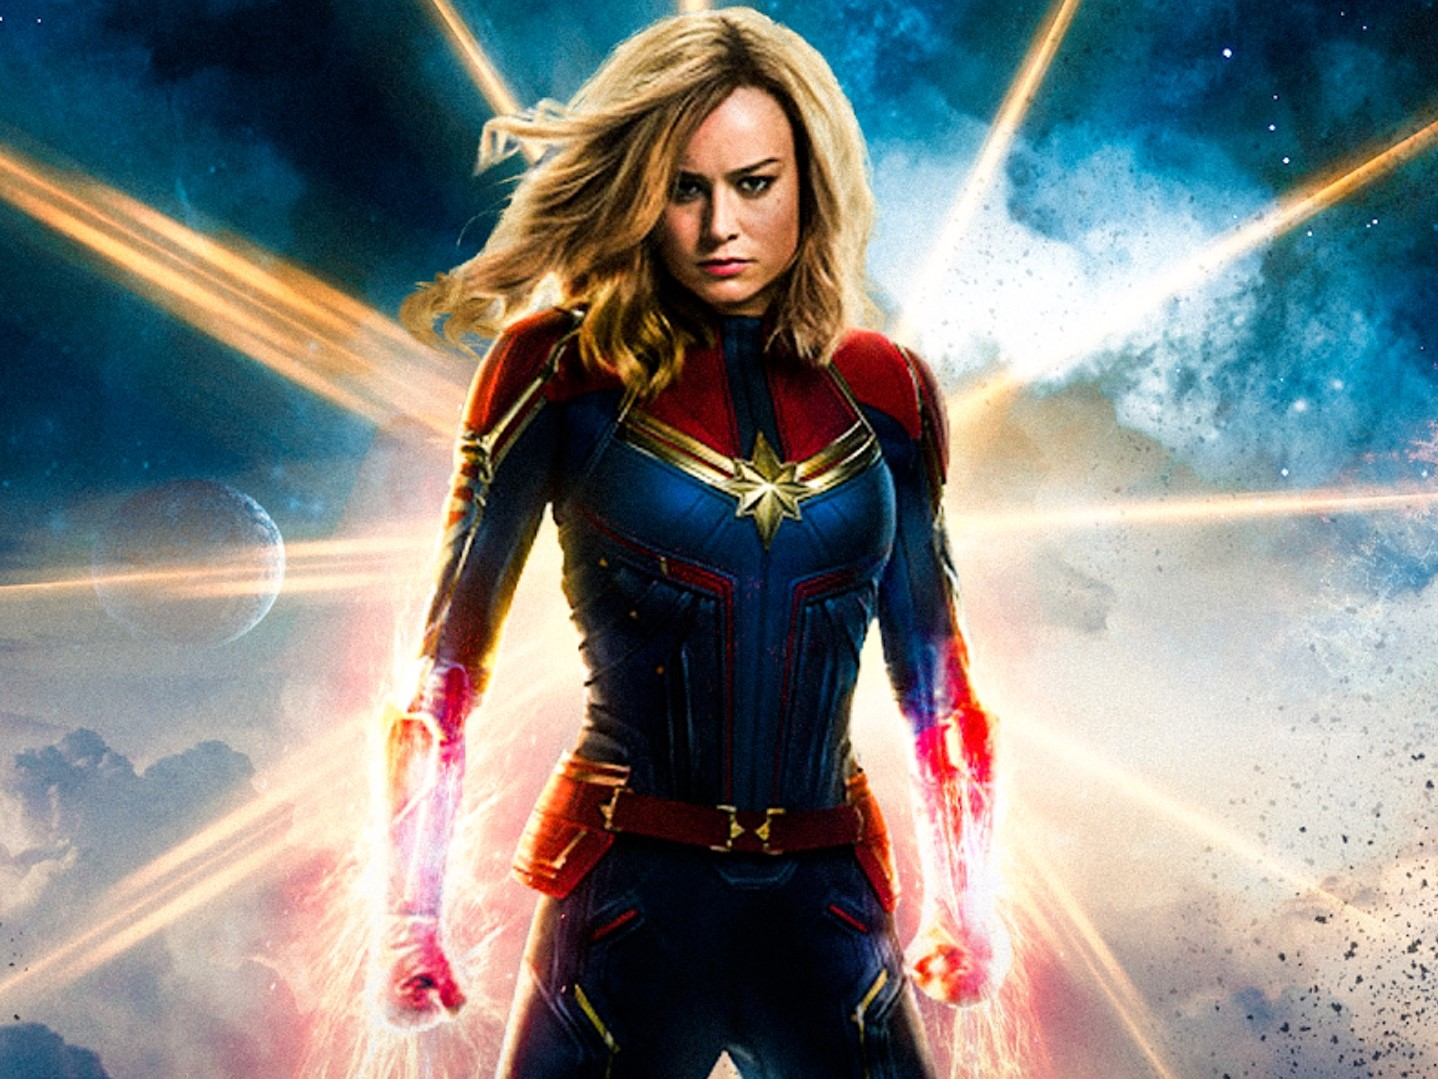 The first main female hero came into theaters to celebrate International Women's Day, and Captain Marvel did not disappoint.